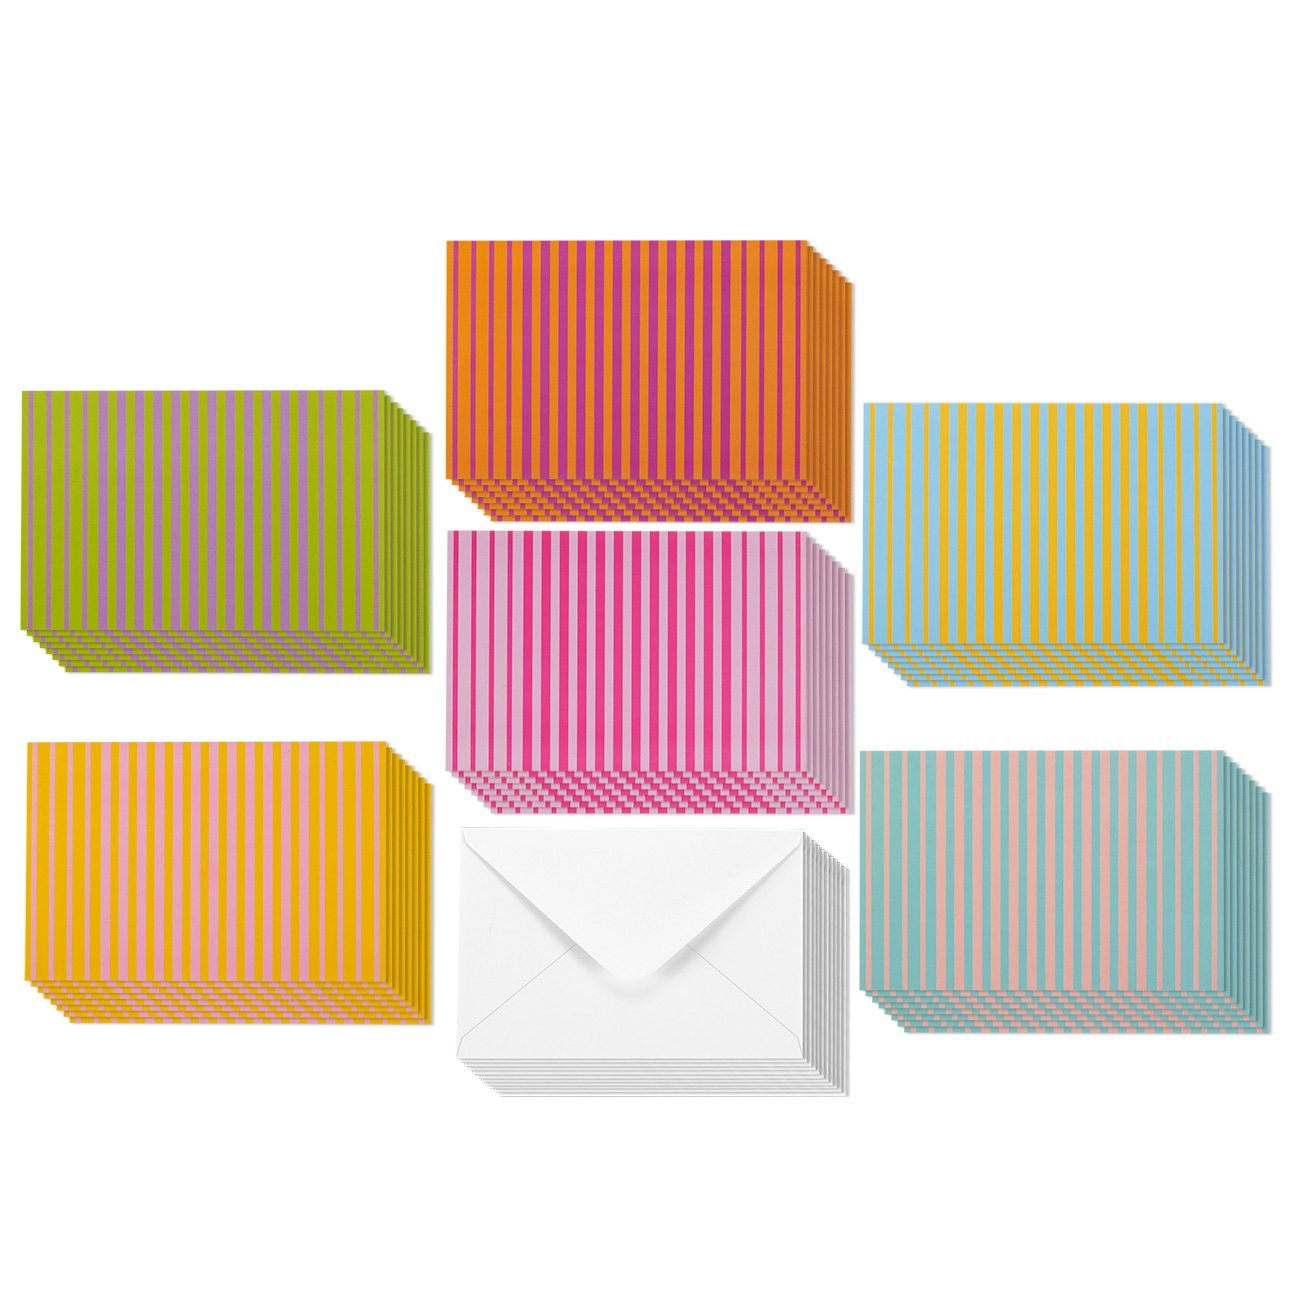 Amazon 40 blank note cards multi color pack matching 48 pack every all occasion blank greeting cards bulk box set 6 colorful striped designs kristyandbryce Image collections